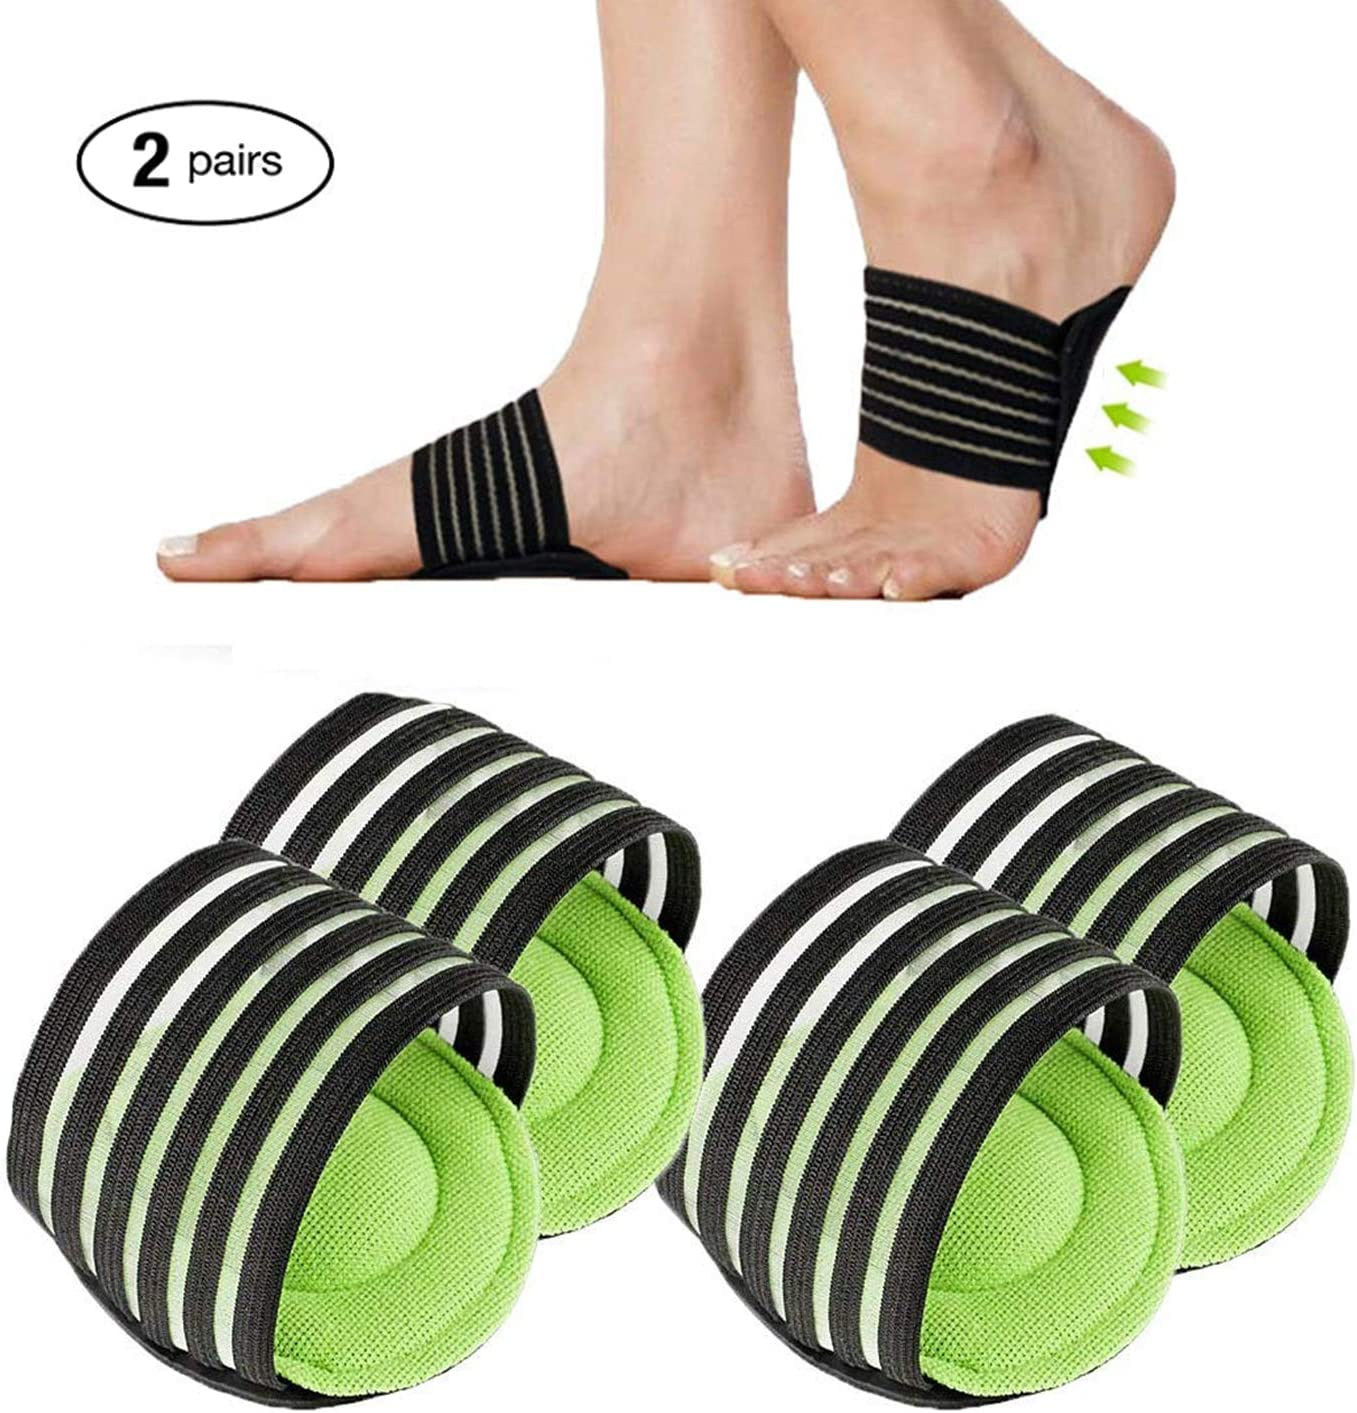 Thick Fallen Arches Cushioned Compression Arch Support Sleeves Foot Relief Cushions Brace for Plantar Fasciitis Flat and Achy Feet Problems for Men and Women